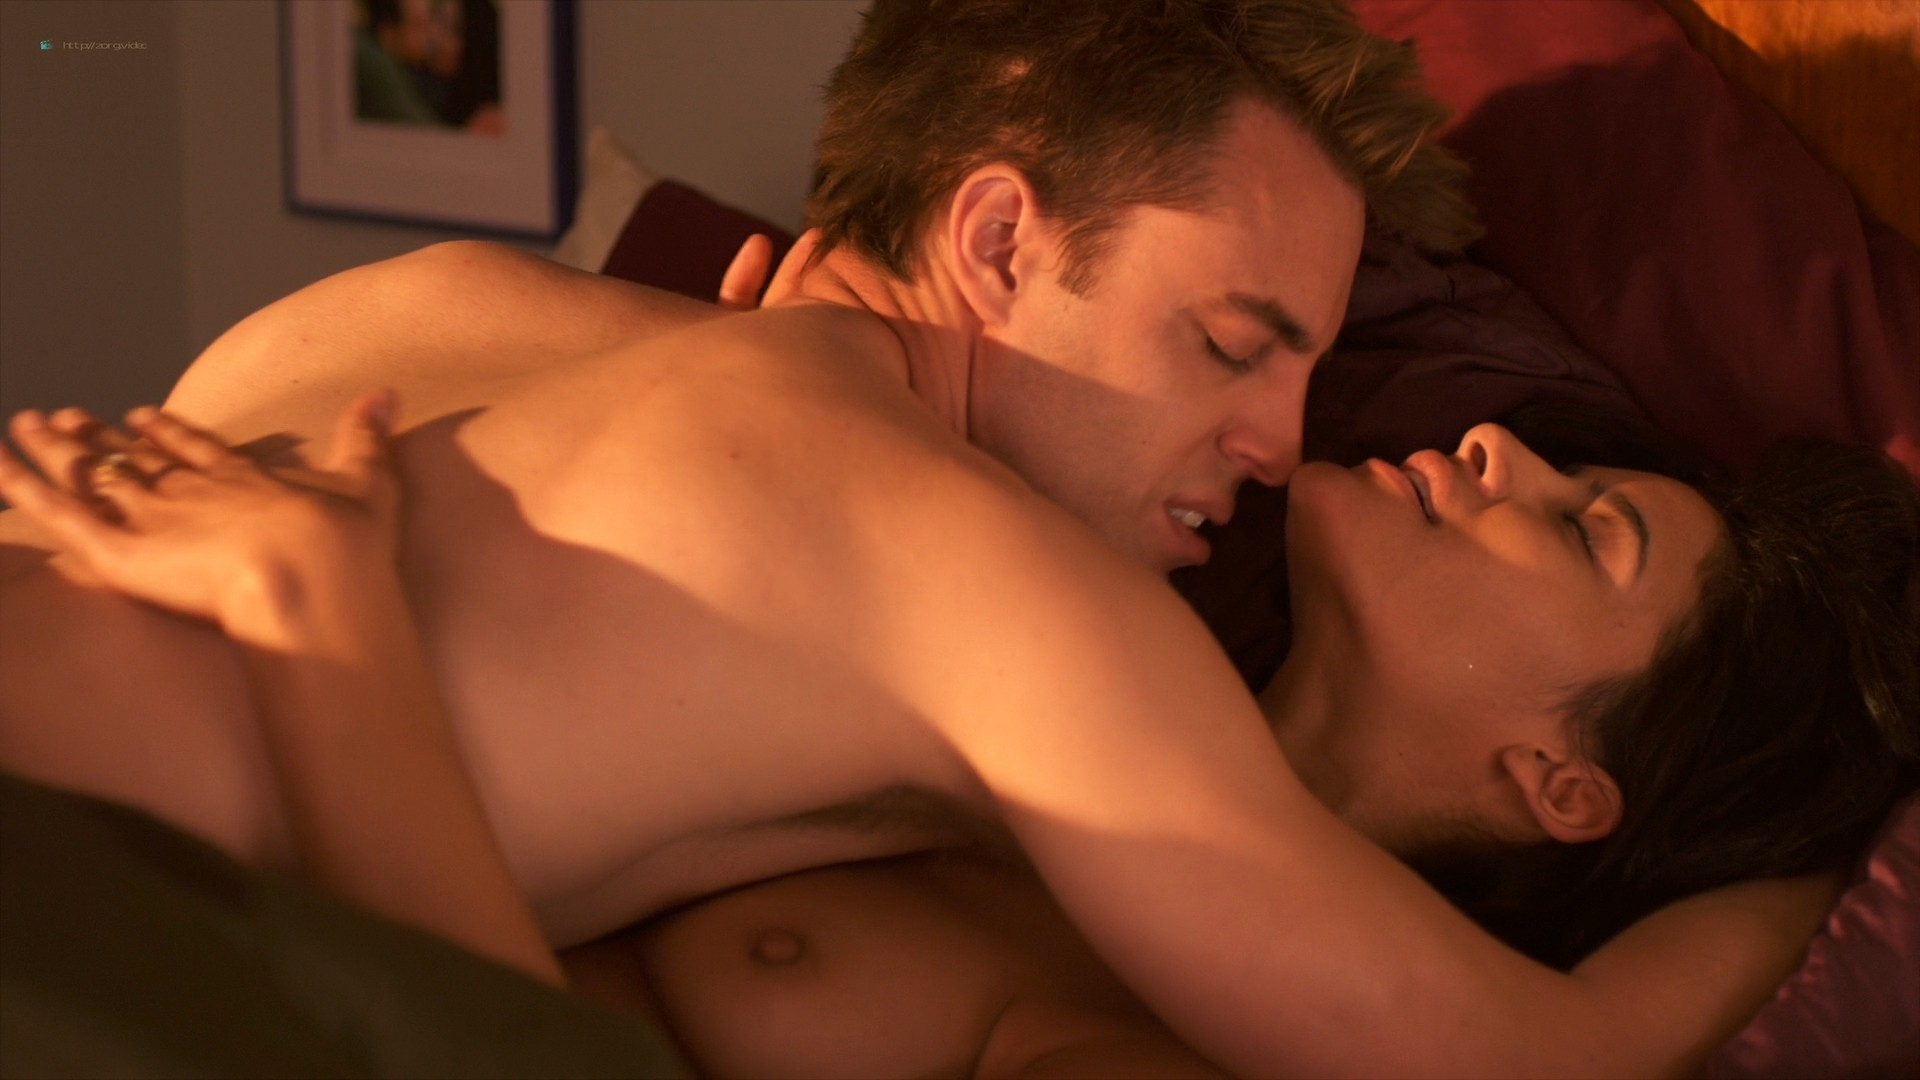 Jessica Clark nude lesbian sex with Barbara Niven nude boobs and butt - A Perfect Ending (2012) HD 1080p (13)